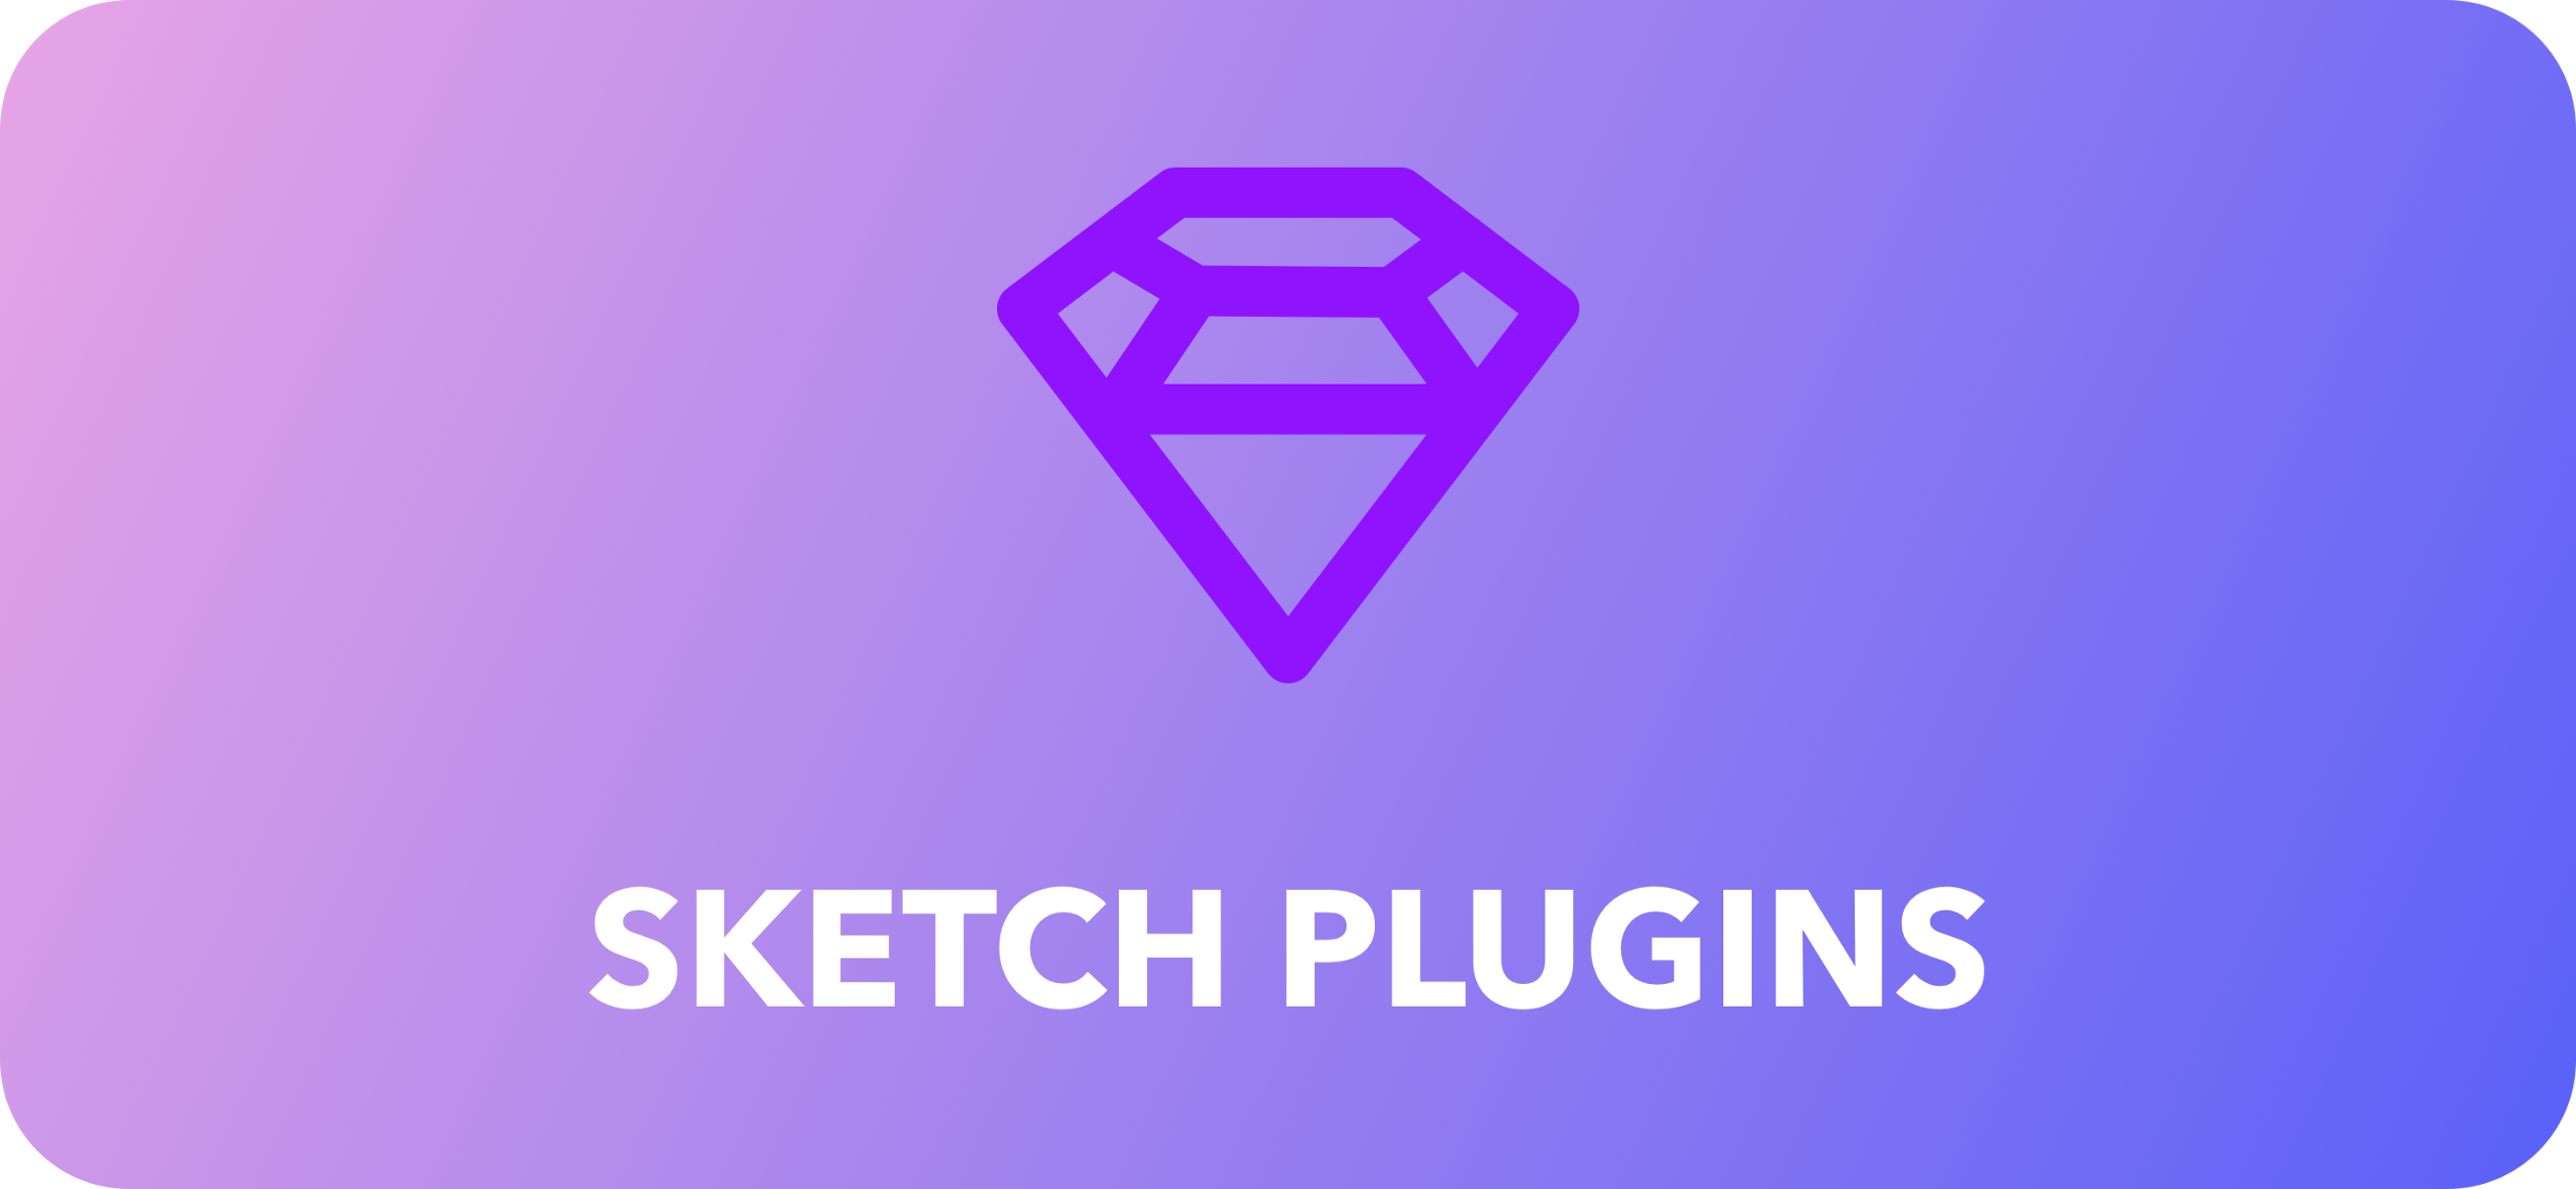 11 Must Have Sketch Plugins to Improve Your Design Workflow